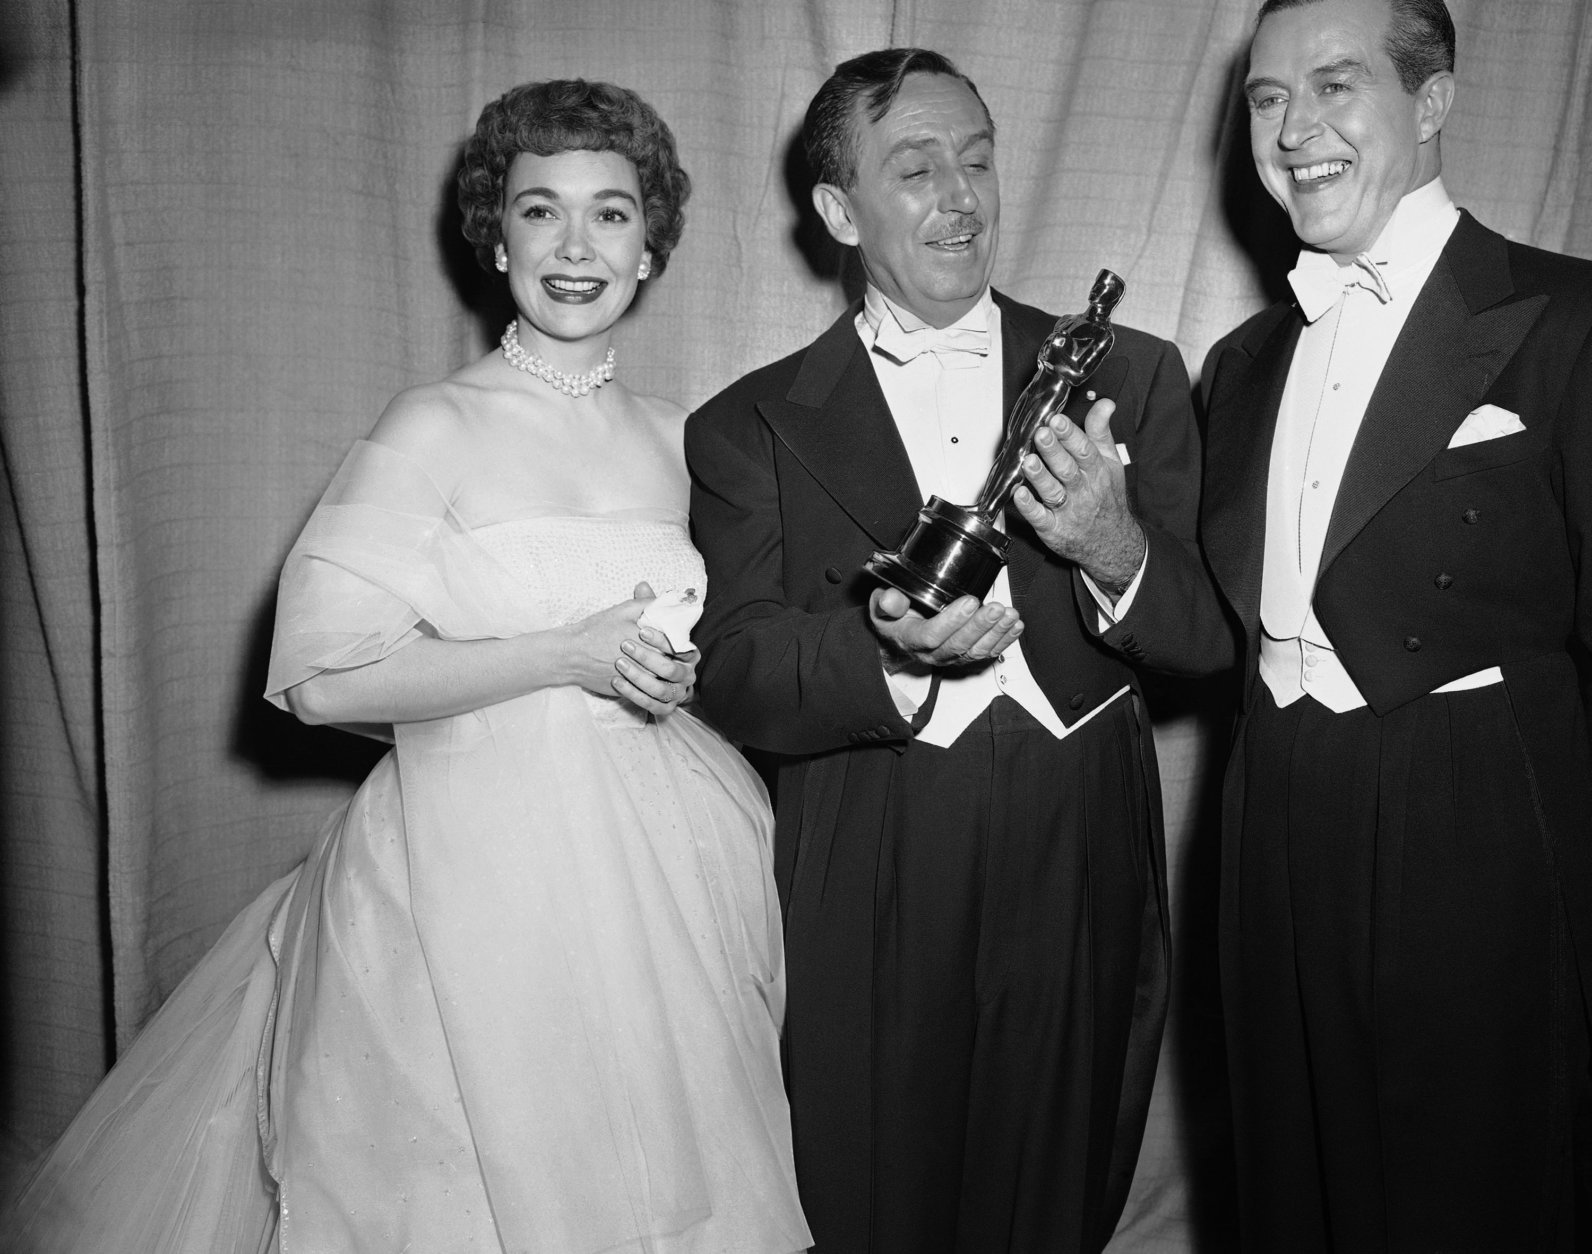 """Walt Disney (center) receives Academy Award for best two-reel short subjects, """"Water Birds"""" from Jane Wyman and Ray Milland, right, at the 1953 Academy Awards presentation in Hollywood on March 19, 1953. (AP Photo)"""